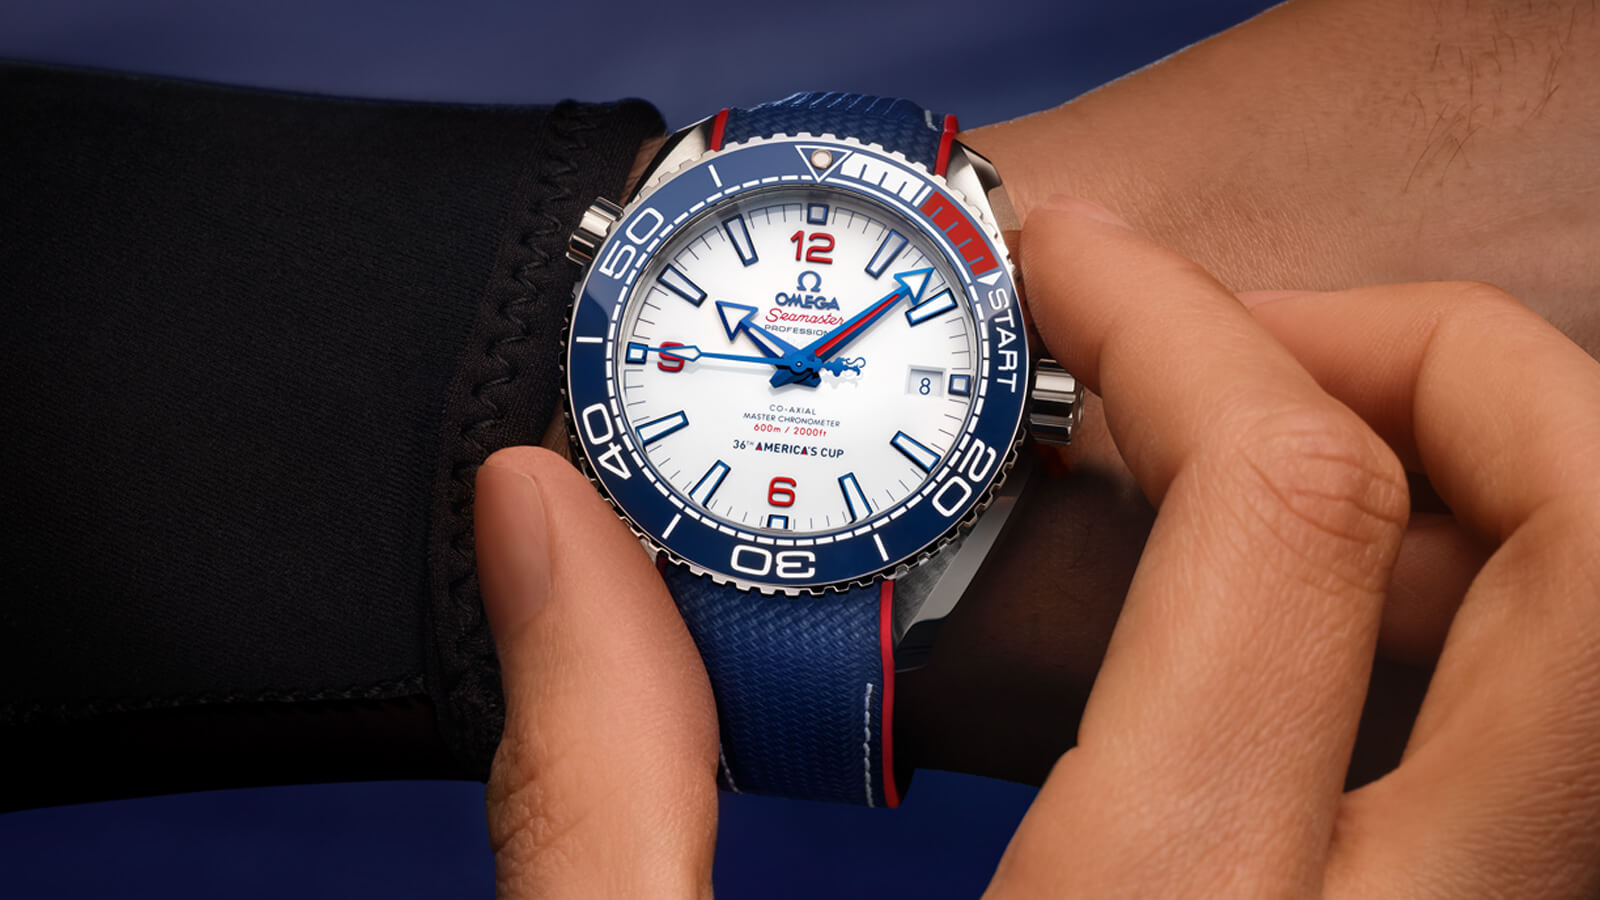 Seamaster Planet Ocean 600 M Planet Ocean 600M Omega Co‑Axial Master Chronometer 43,5 mm - 215.32.43.21.04.001 - Anzeigen 1